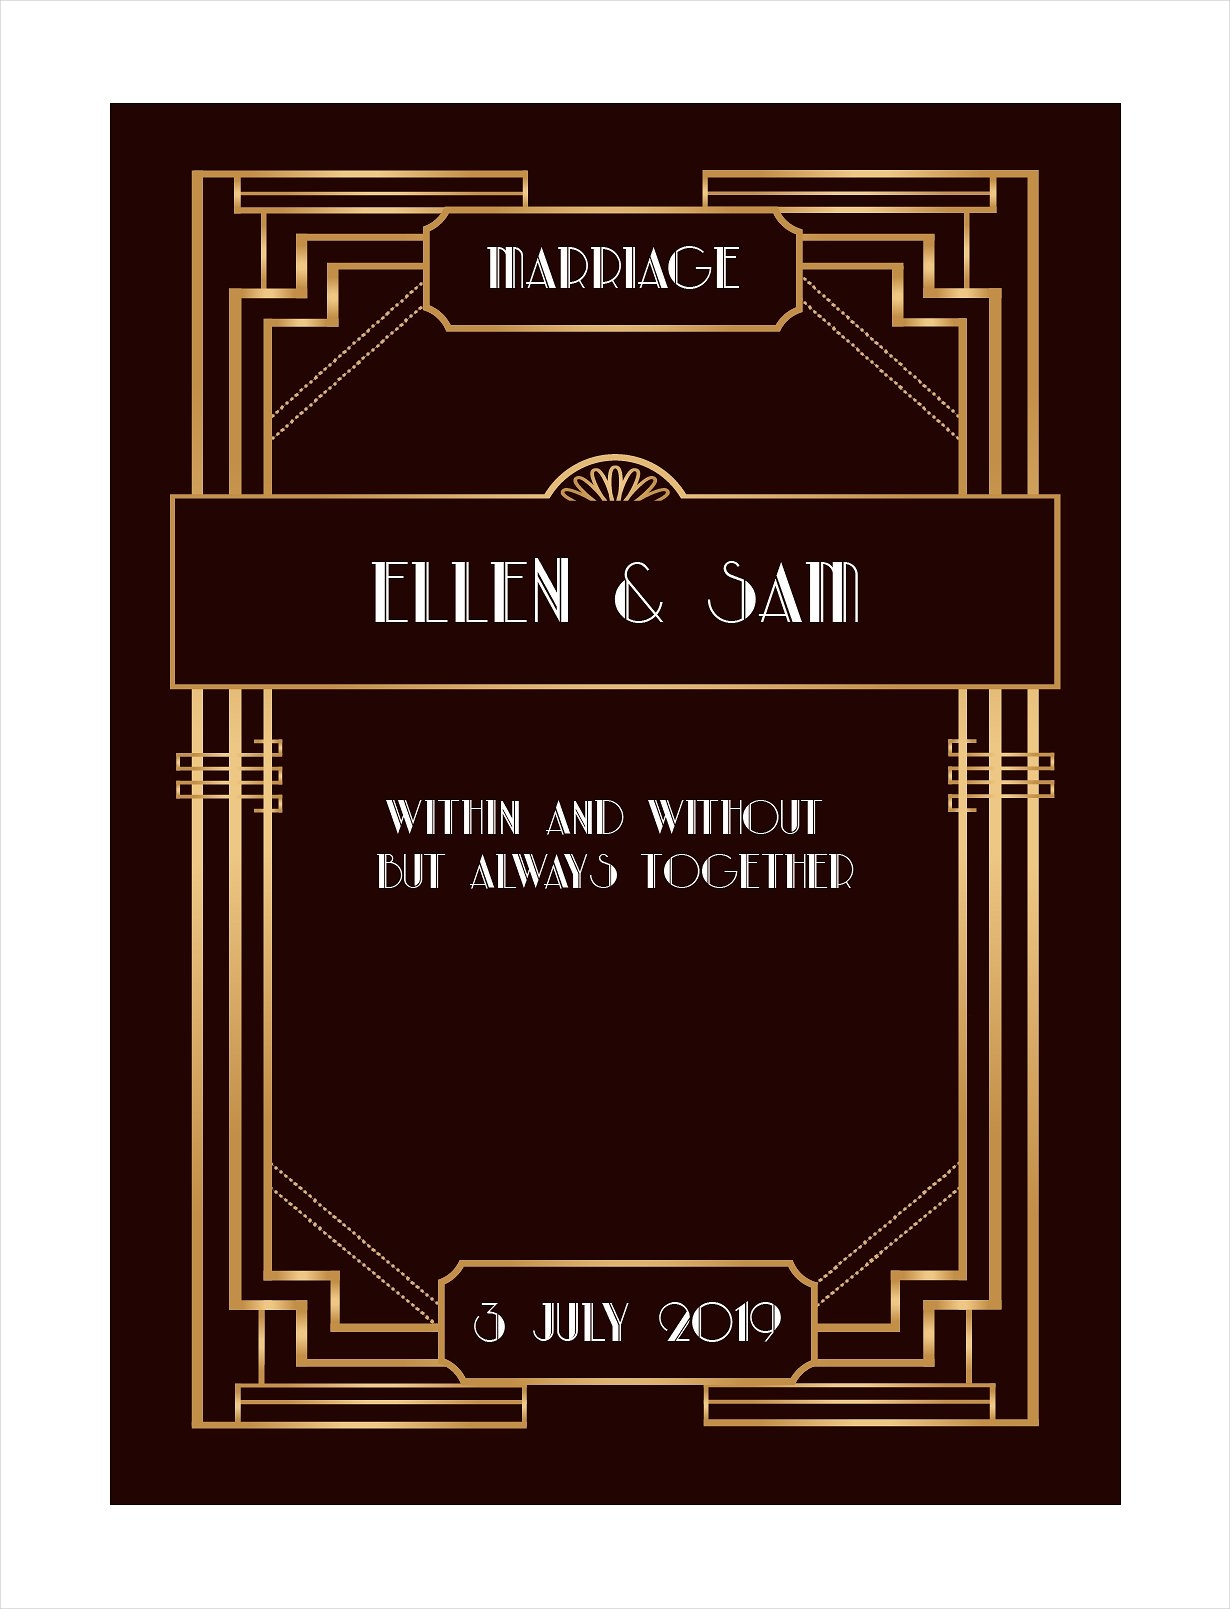 gold and black gatsby art deco vintage wedding invitation1